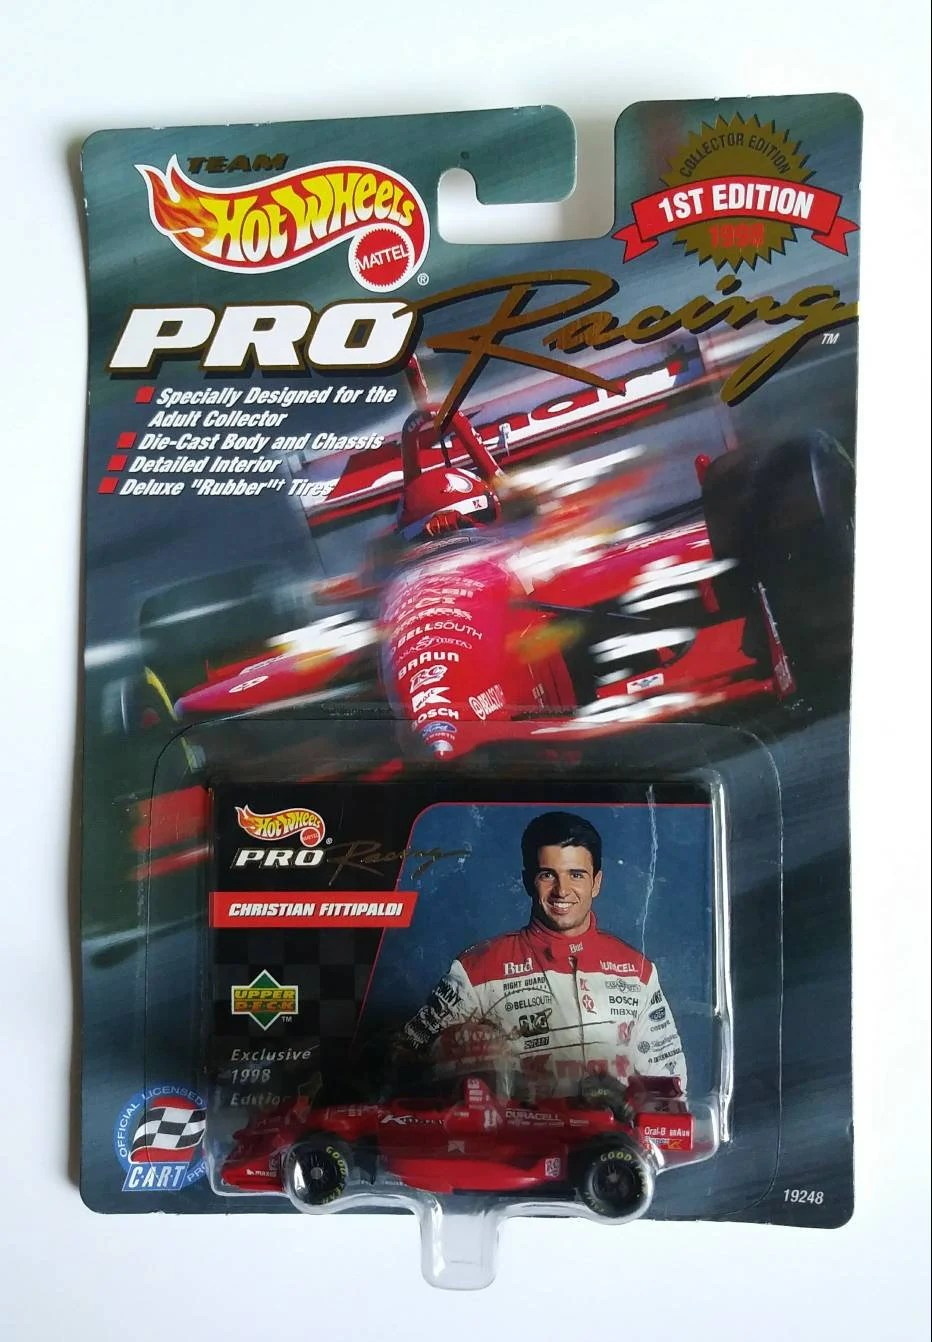 Candle Making Kit Kmart Christian Fittipaldi Hot Wheels Pro Racing 11 Kmart Indy Cart